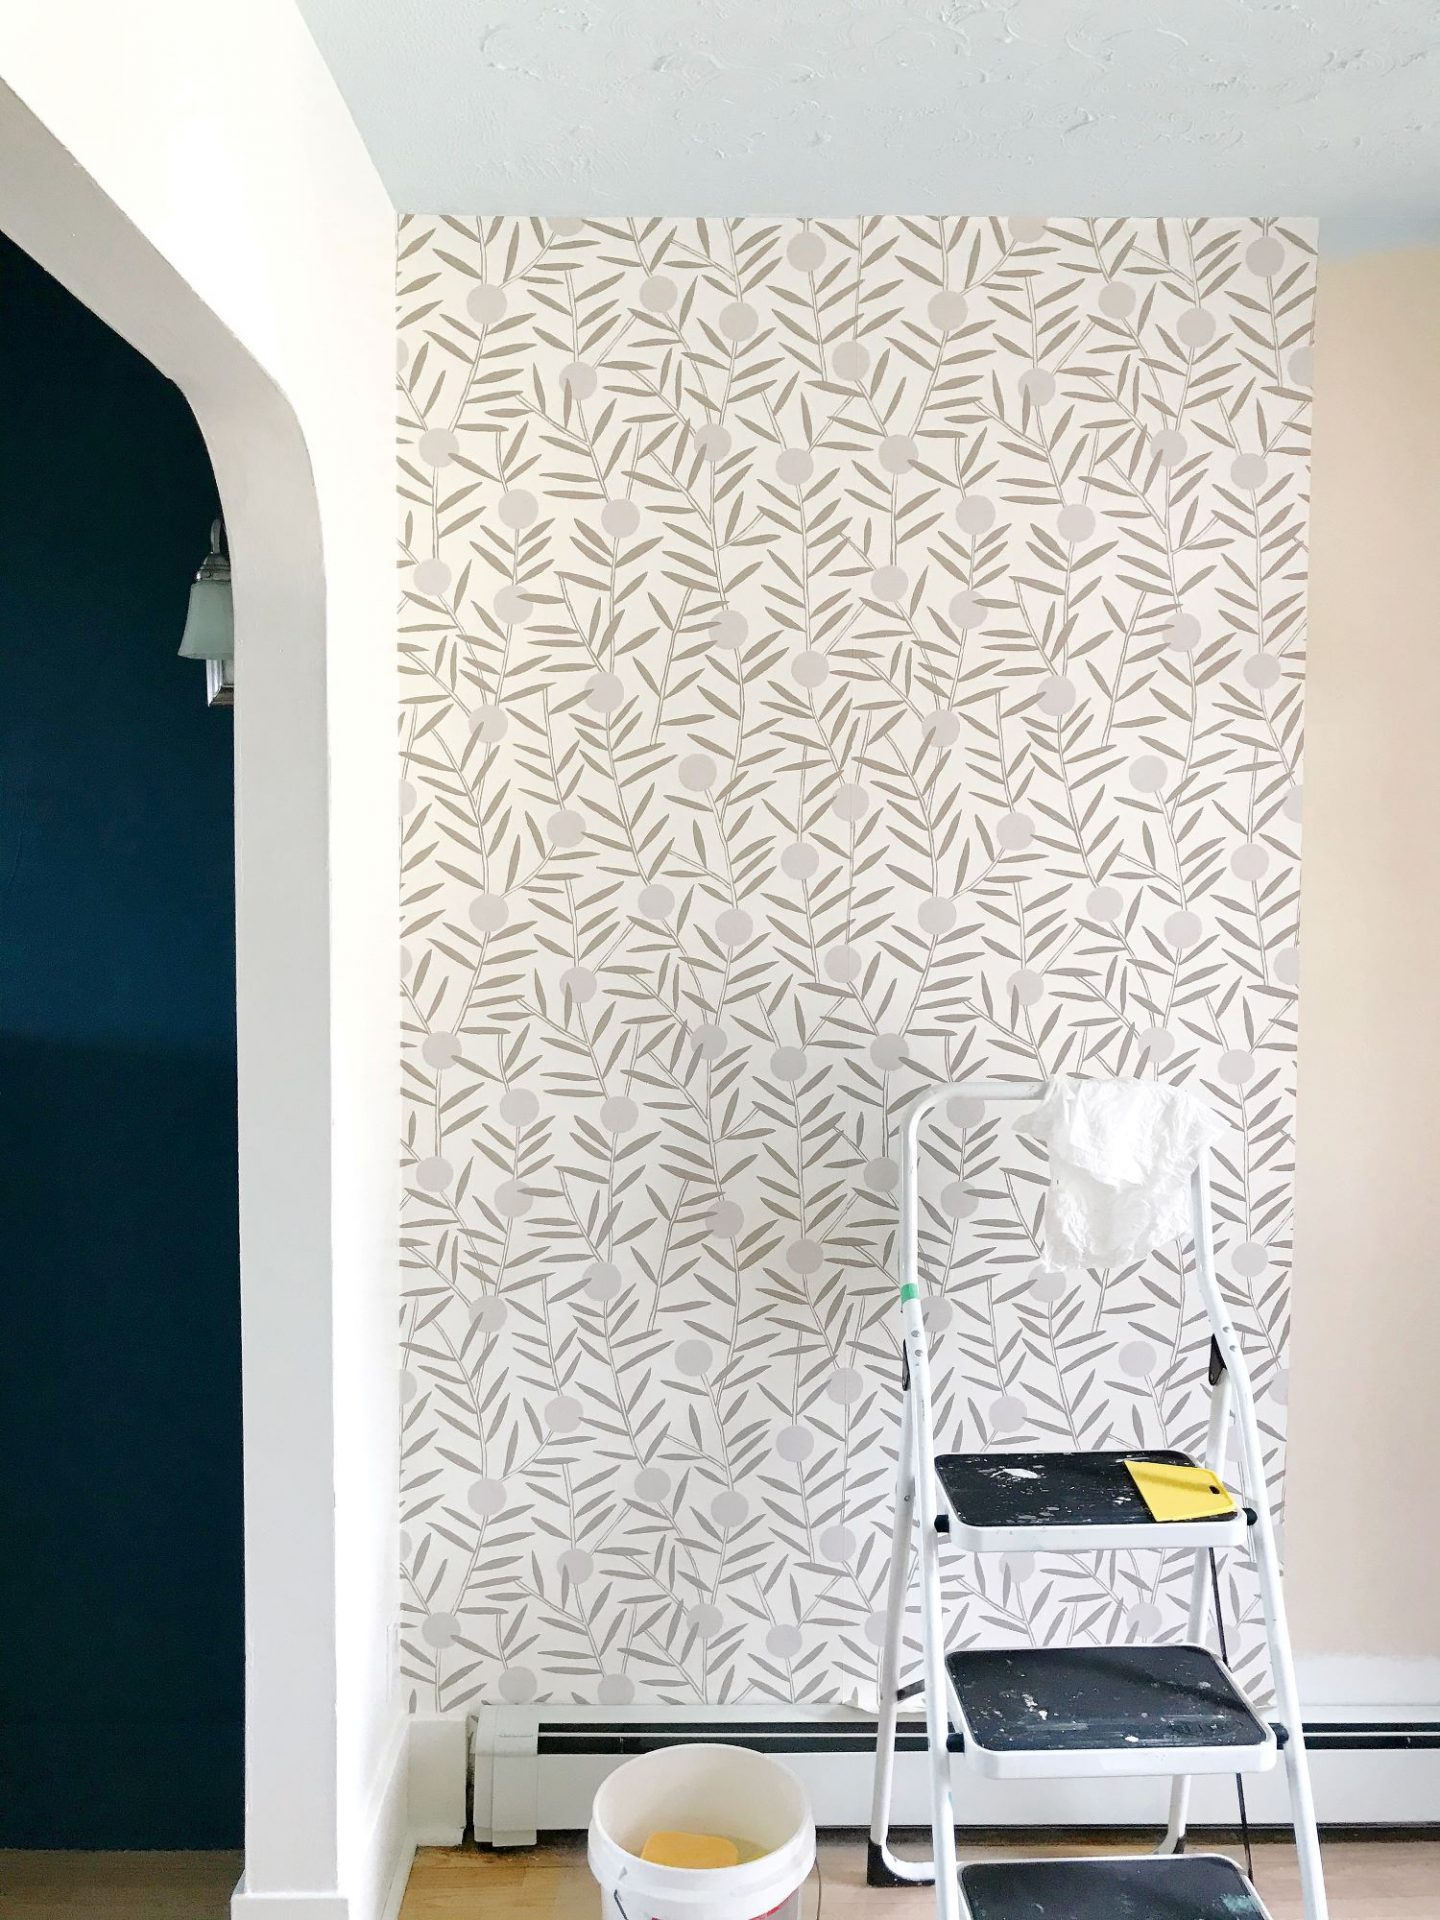 Non-Pasted Wallpaper Installation DIY